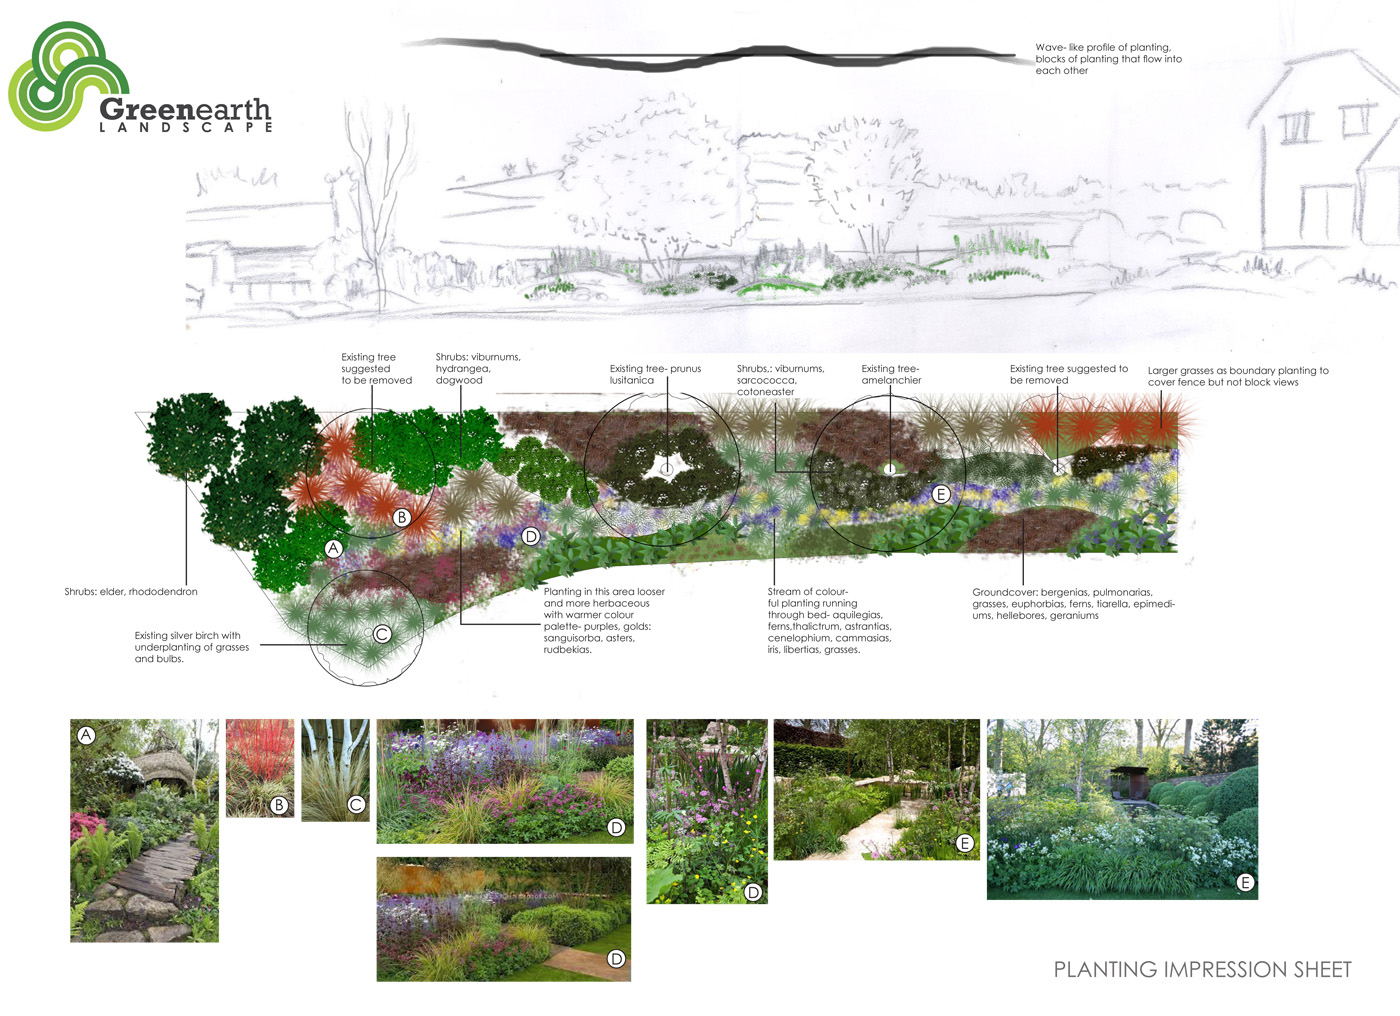 Green earth landscape garden design devon somerset cornwall for Garden design planting schemes